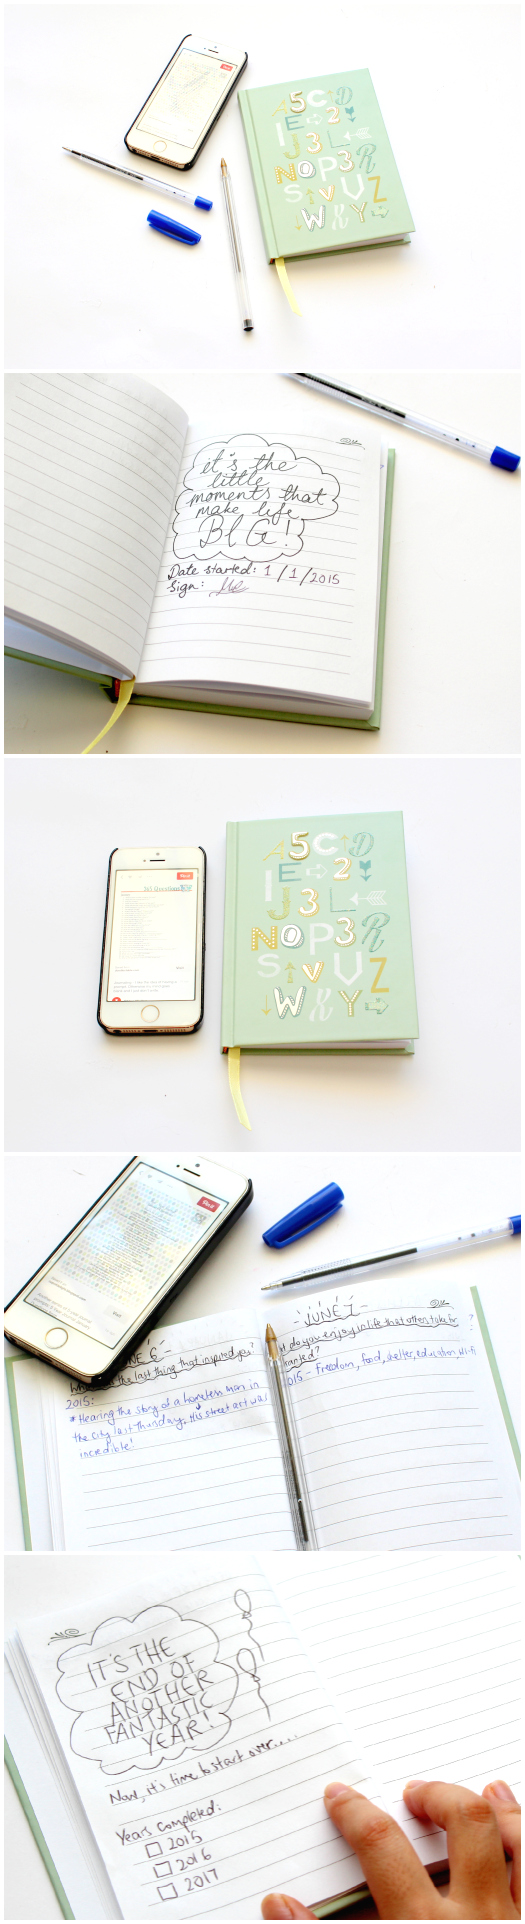 DIY Kikki.k Inspired 3 Year Journal By Miss Caly